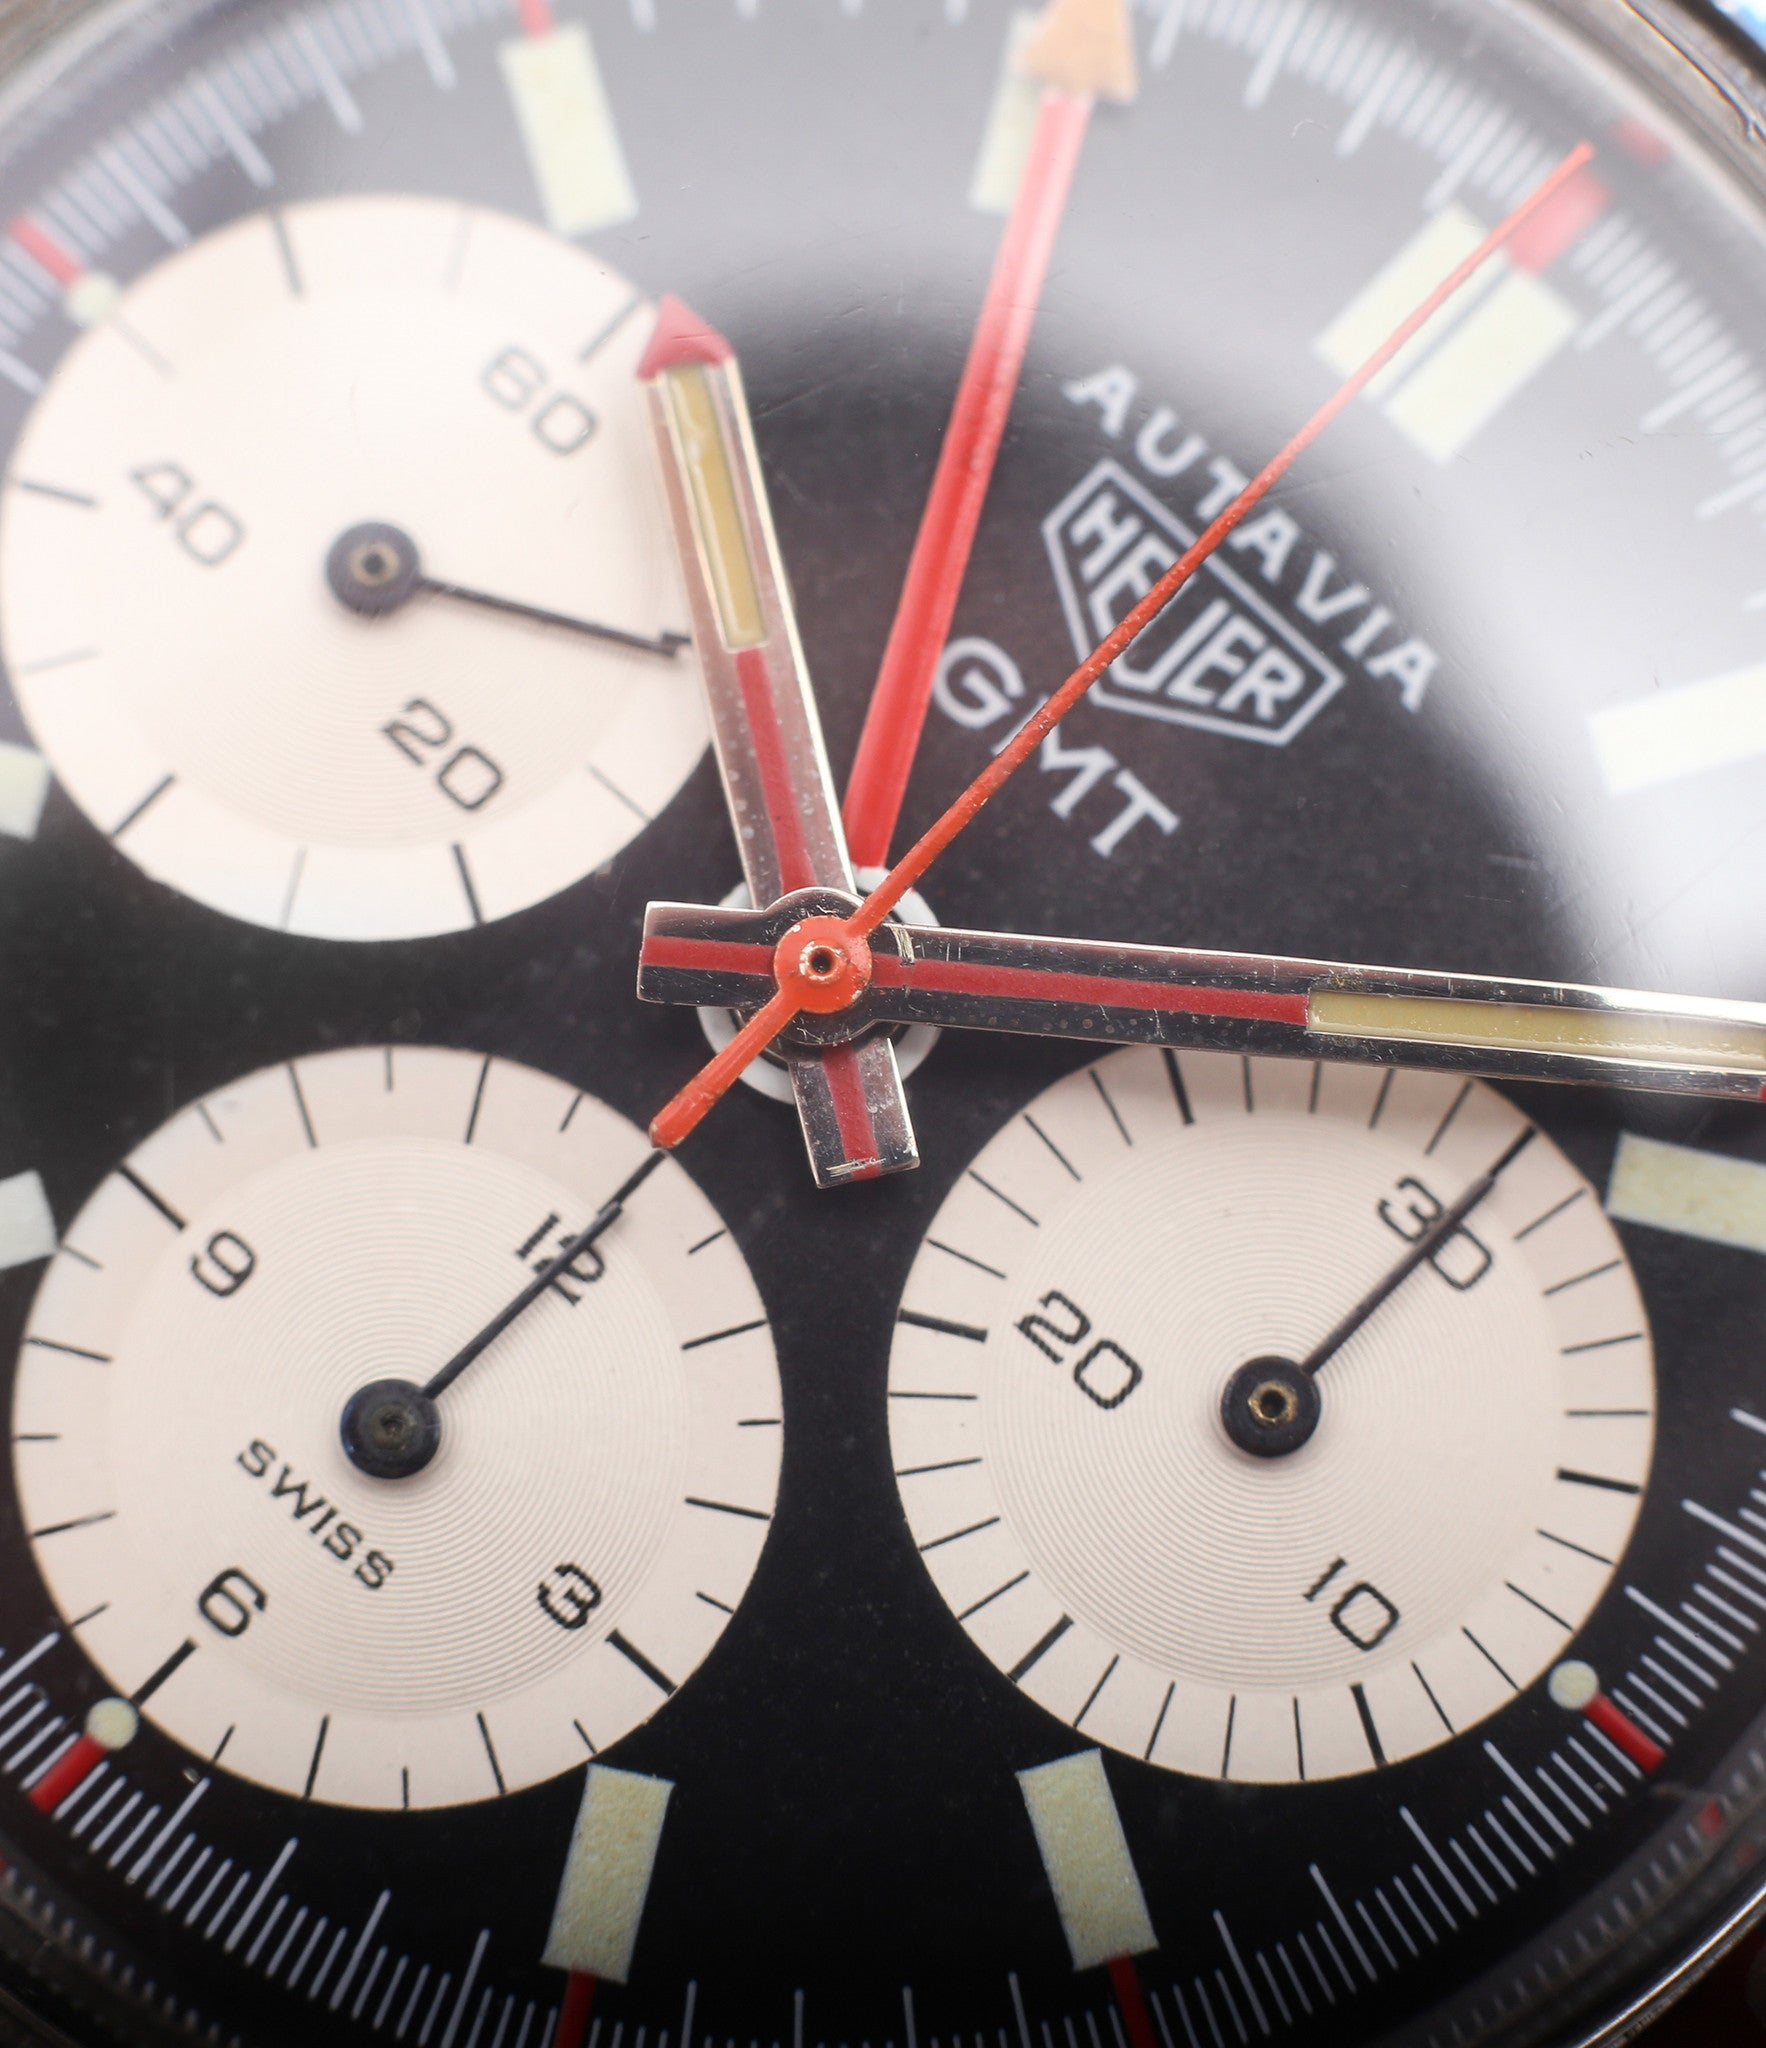 selling Heuer Autavia GMT 2446C vintage steel chronograph watch online at A Collected Man London